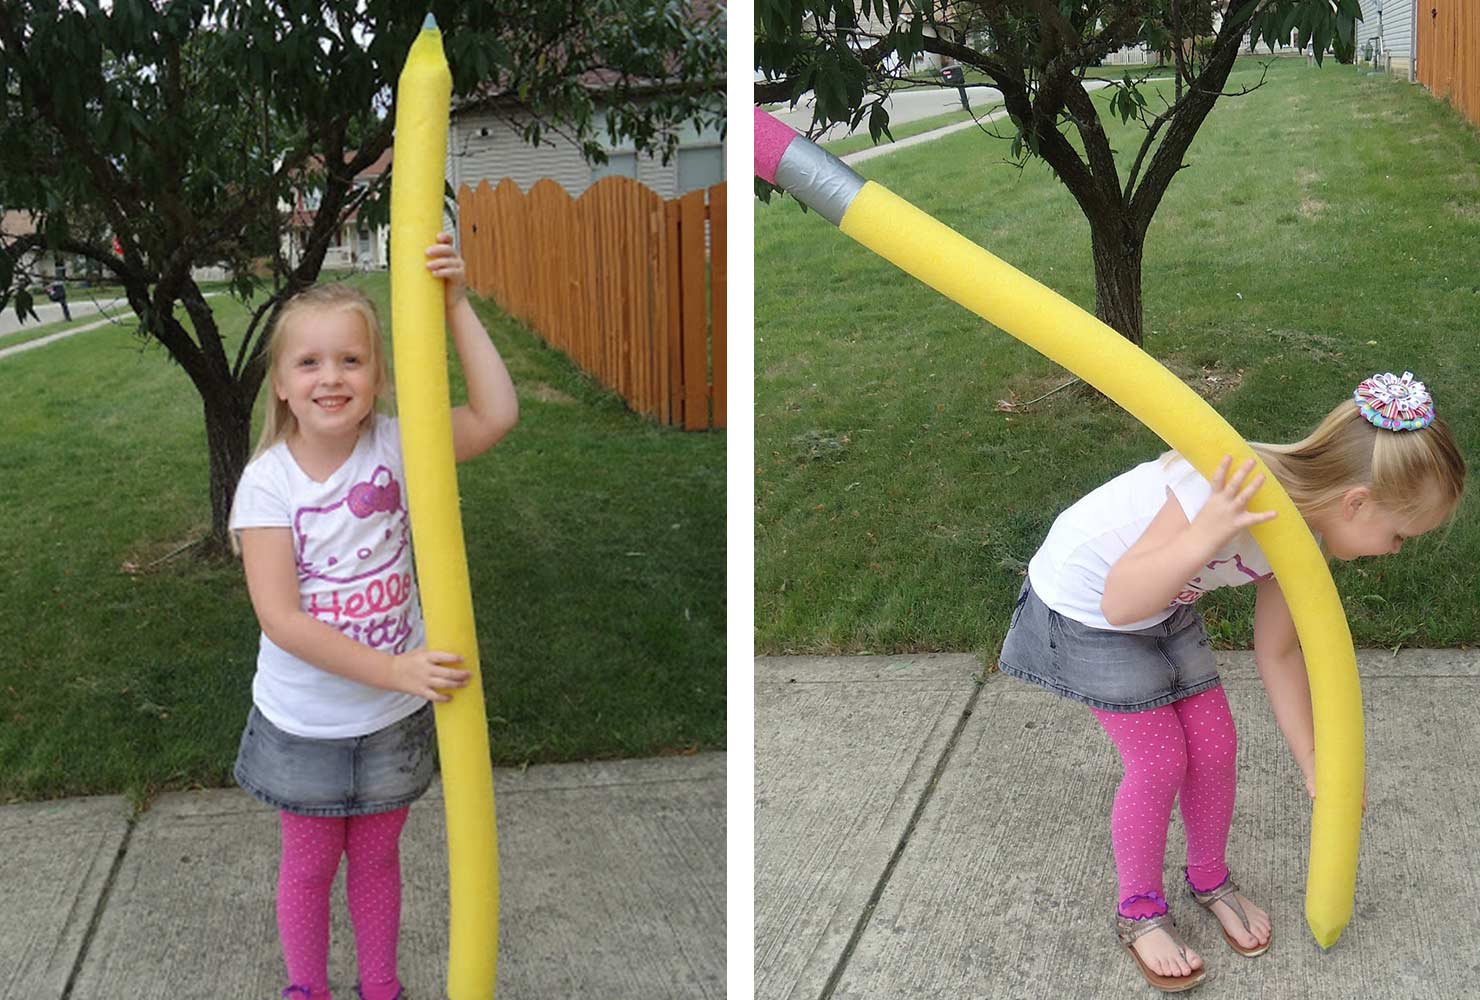 young blonde girl holding large homemade pencil prop